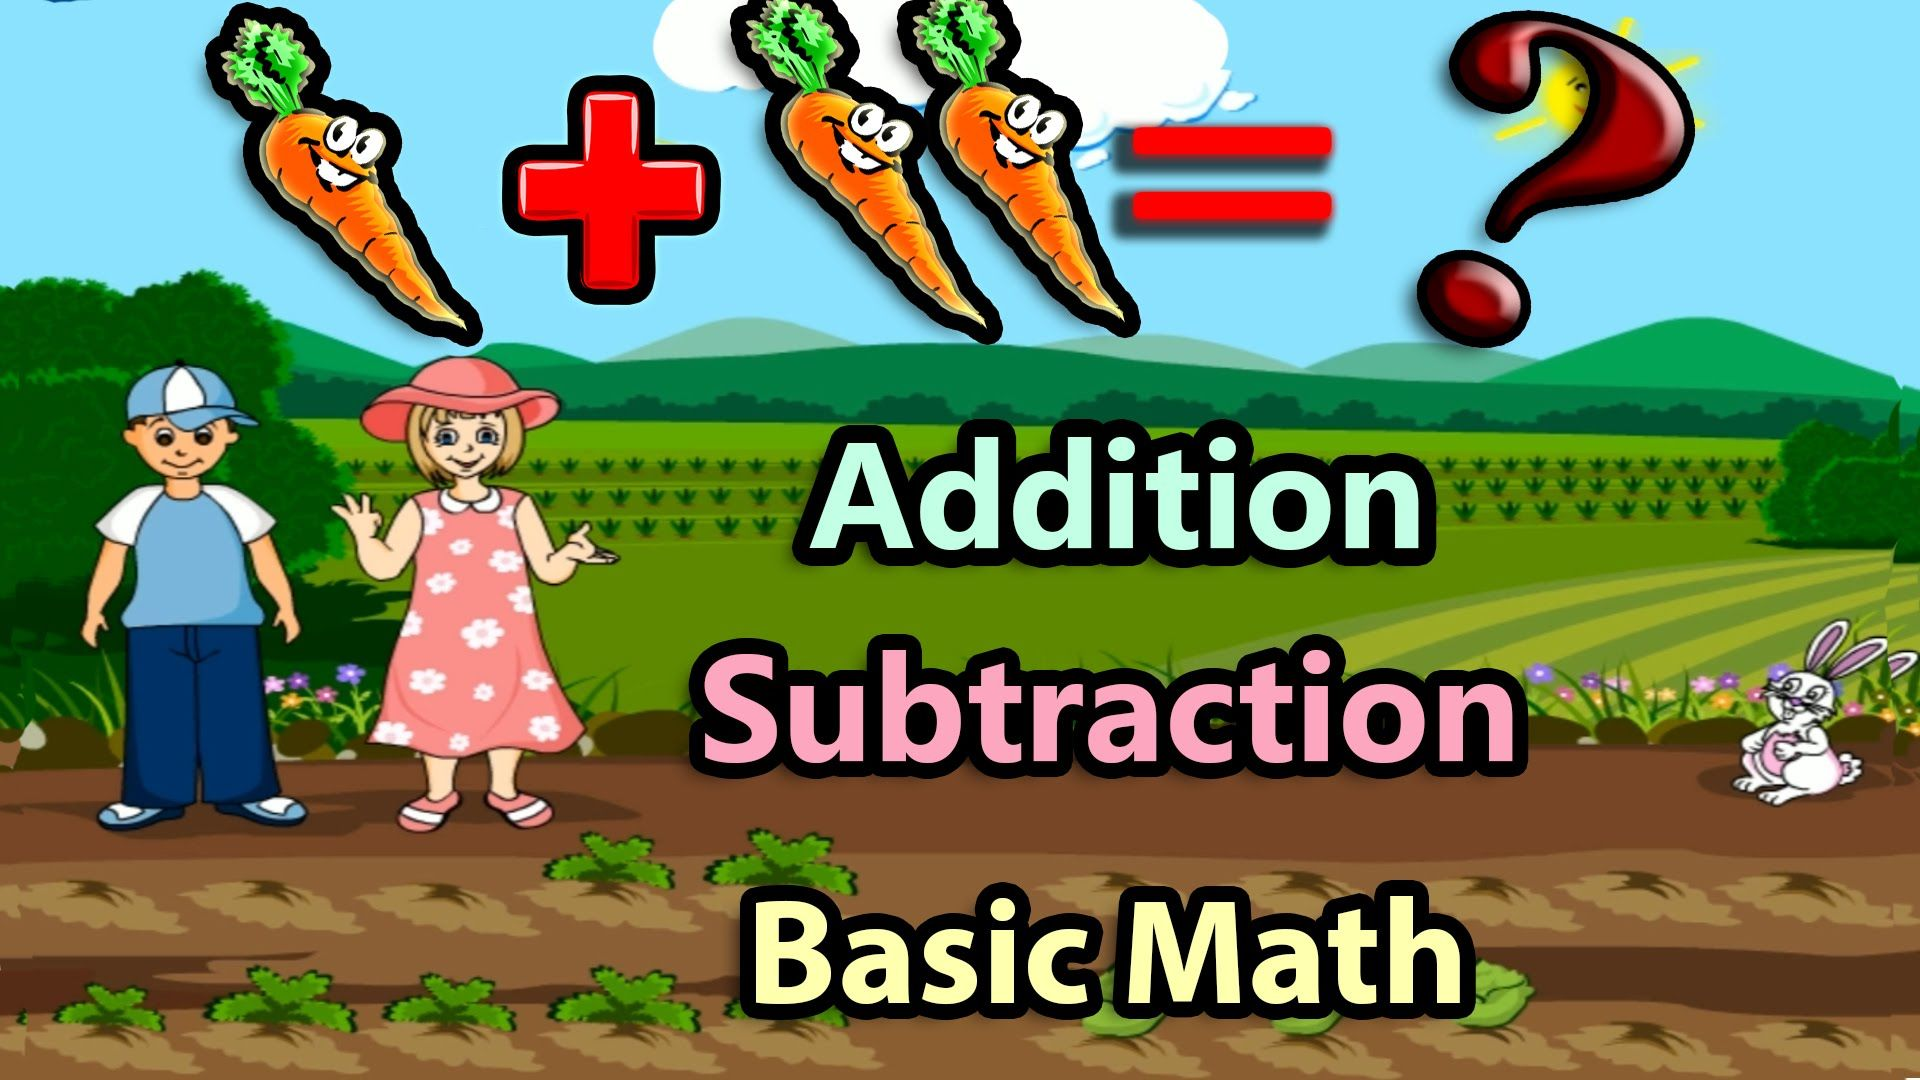 Annie And Jose Have Fun With Addition And Subtraction In